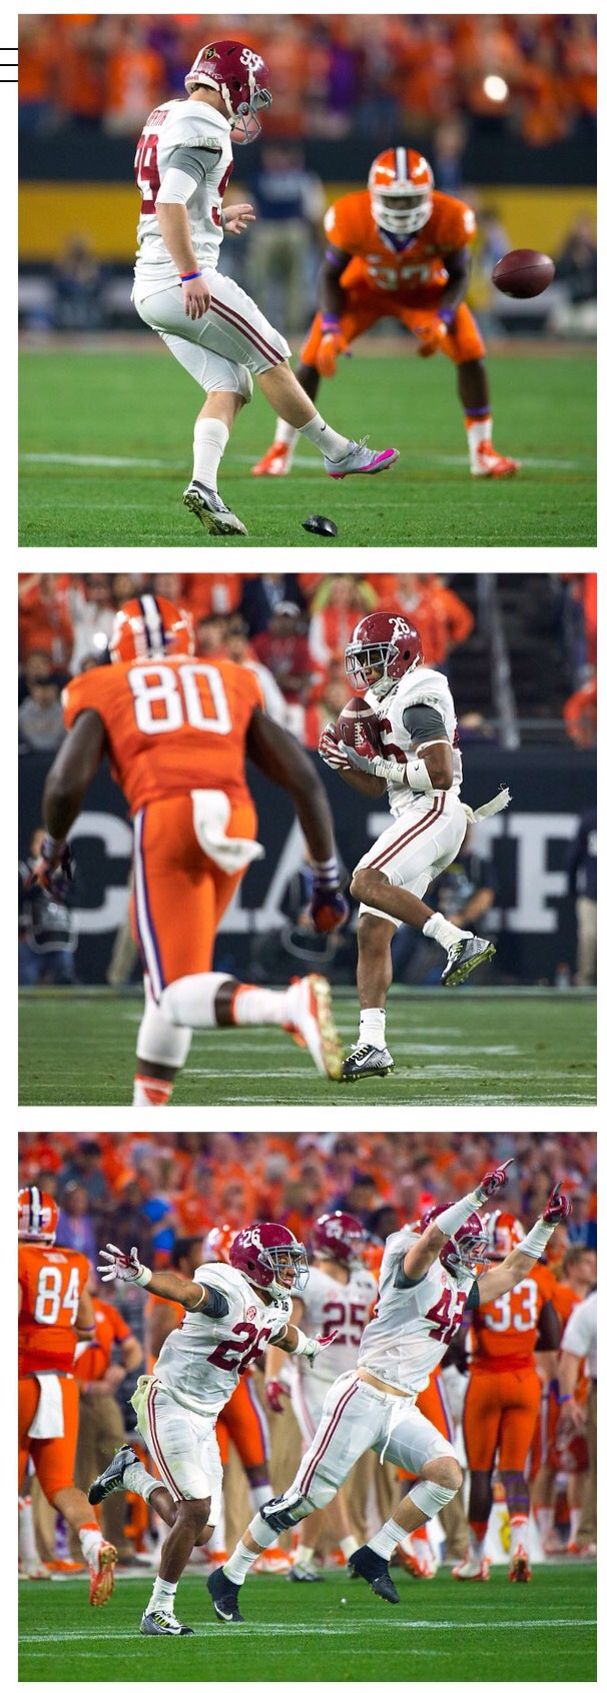 The On-side Kick! Alabama takes control of the National Championship with a 4th…